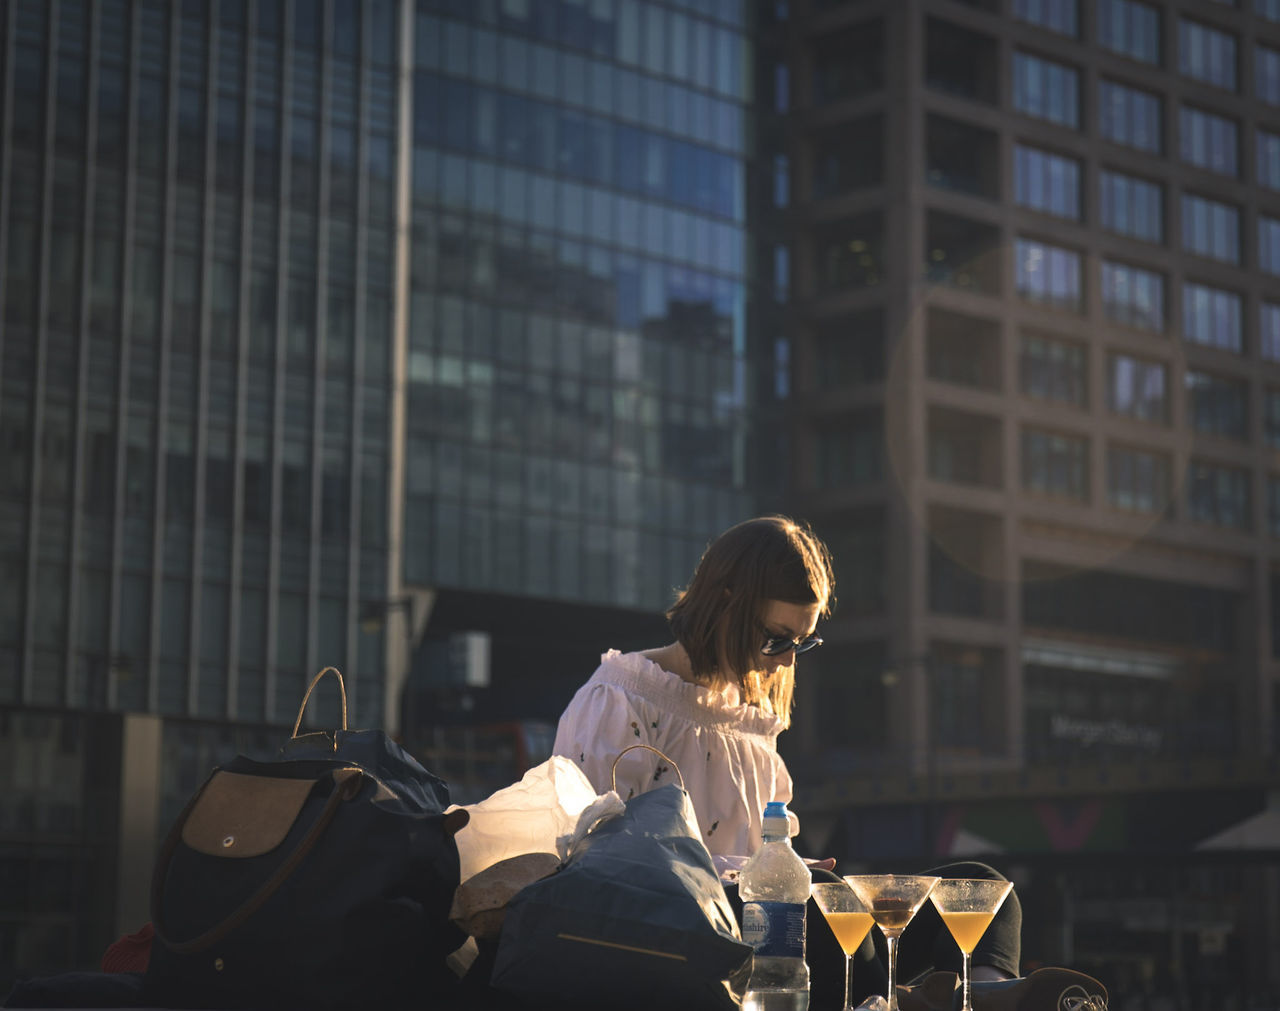 Summer in the city - in the evening o e needs a drink and to unwind -Lovin' spoinful's 1966 hit is now in my head One Woman Only Adults Only Skyscraper Outdoors Building Exterior Built Structure Canon5dmarkiv Day Liveforthestory Canonphotography Canonuk Canon @canonuk Rimlight Drinks Drinking Golden Light London Canary Wharf